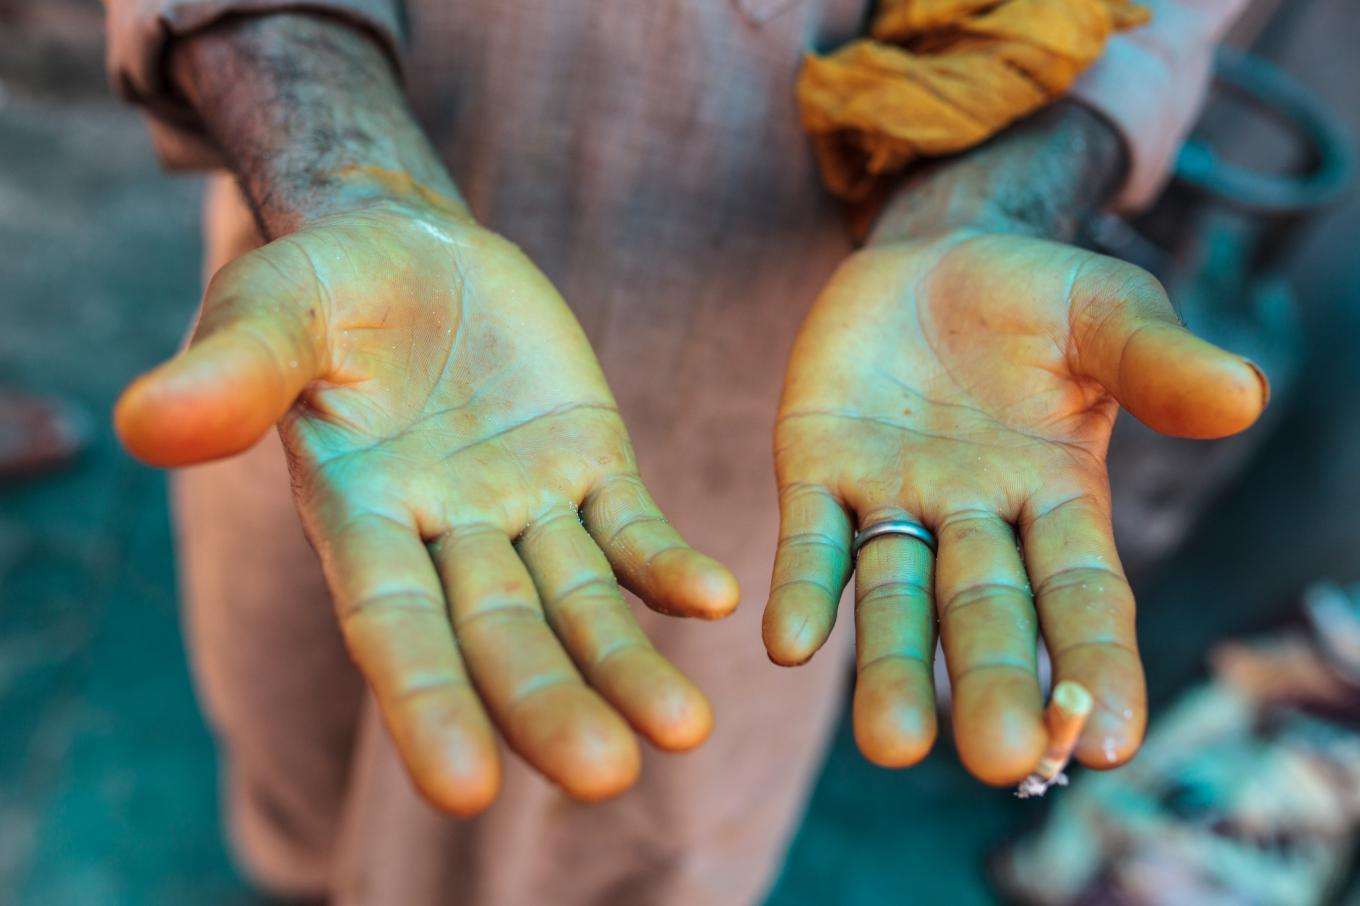 1. Gullam Rosul, chef of the New Zum Zum Hotel, prepares kebabs for customers. / 2. Rosul displays his hands, stained yellow from cooking with curry.